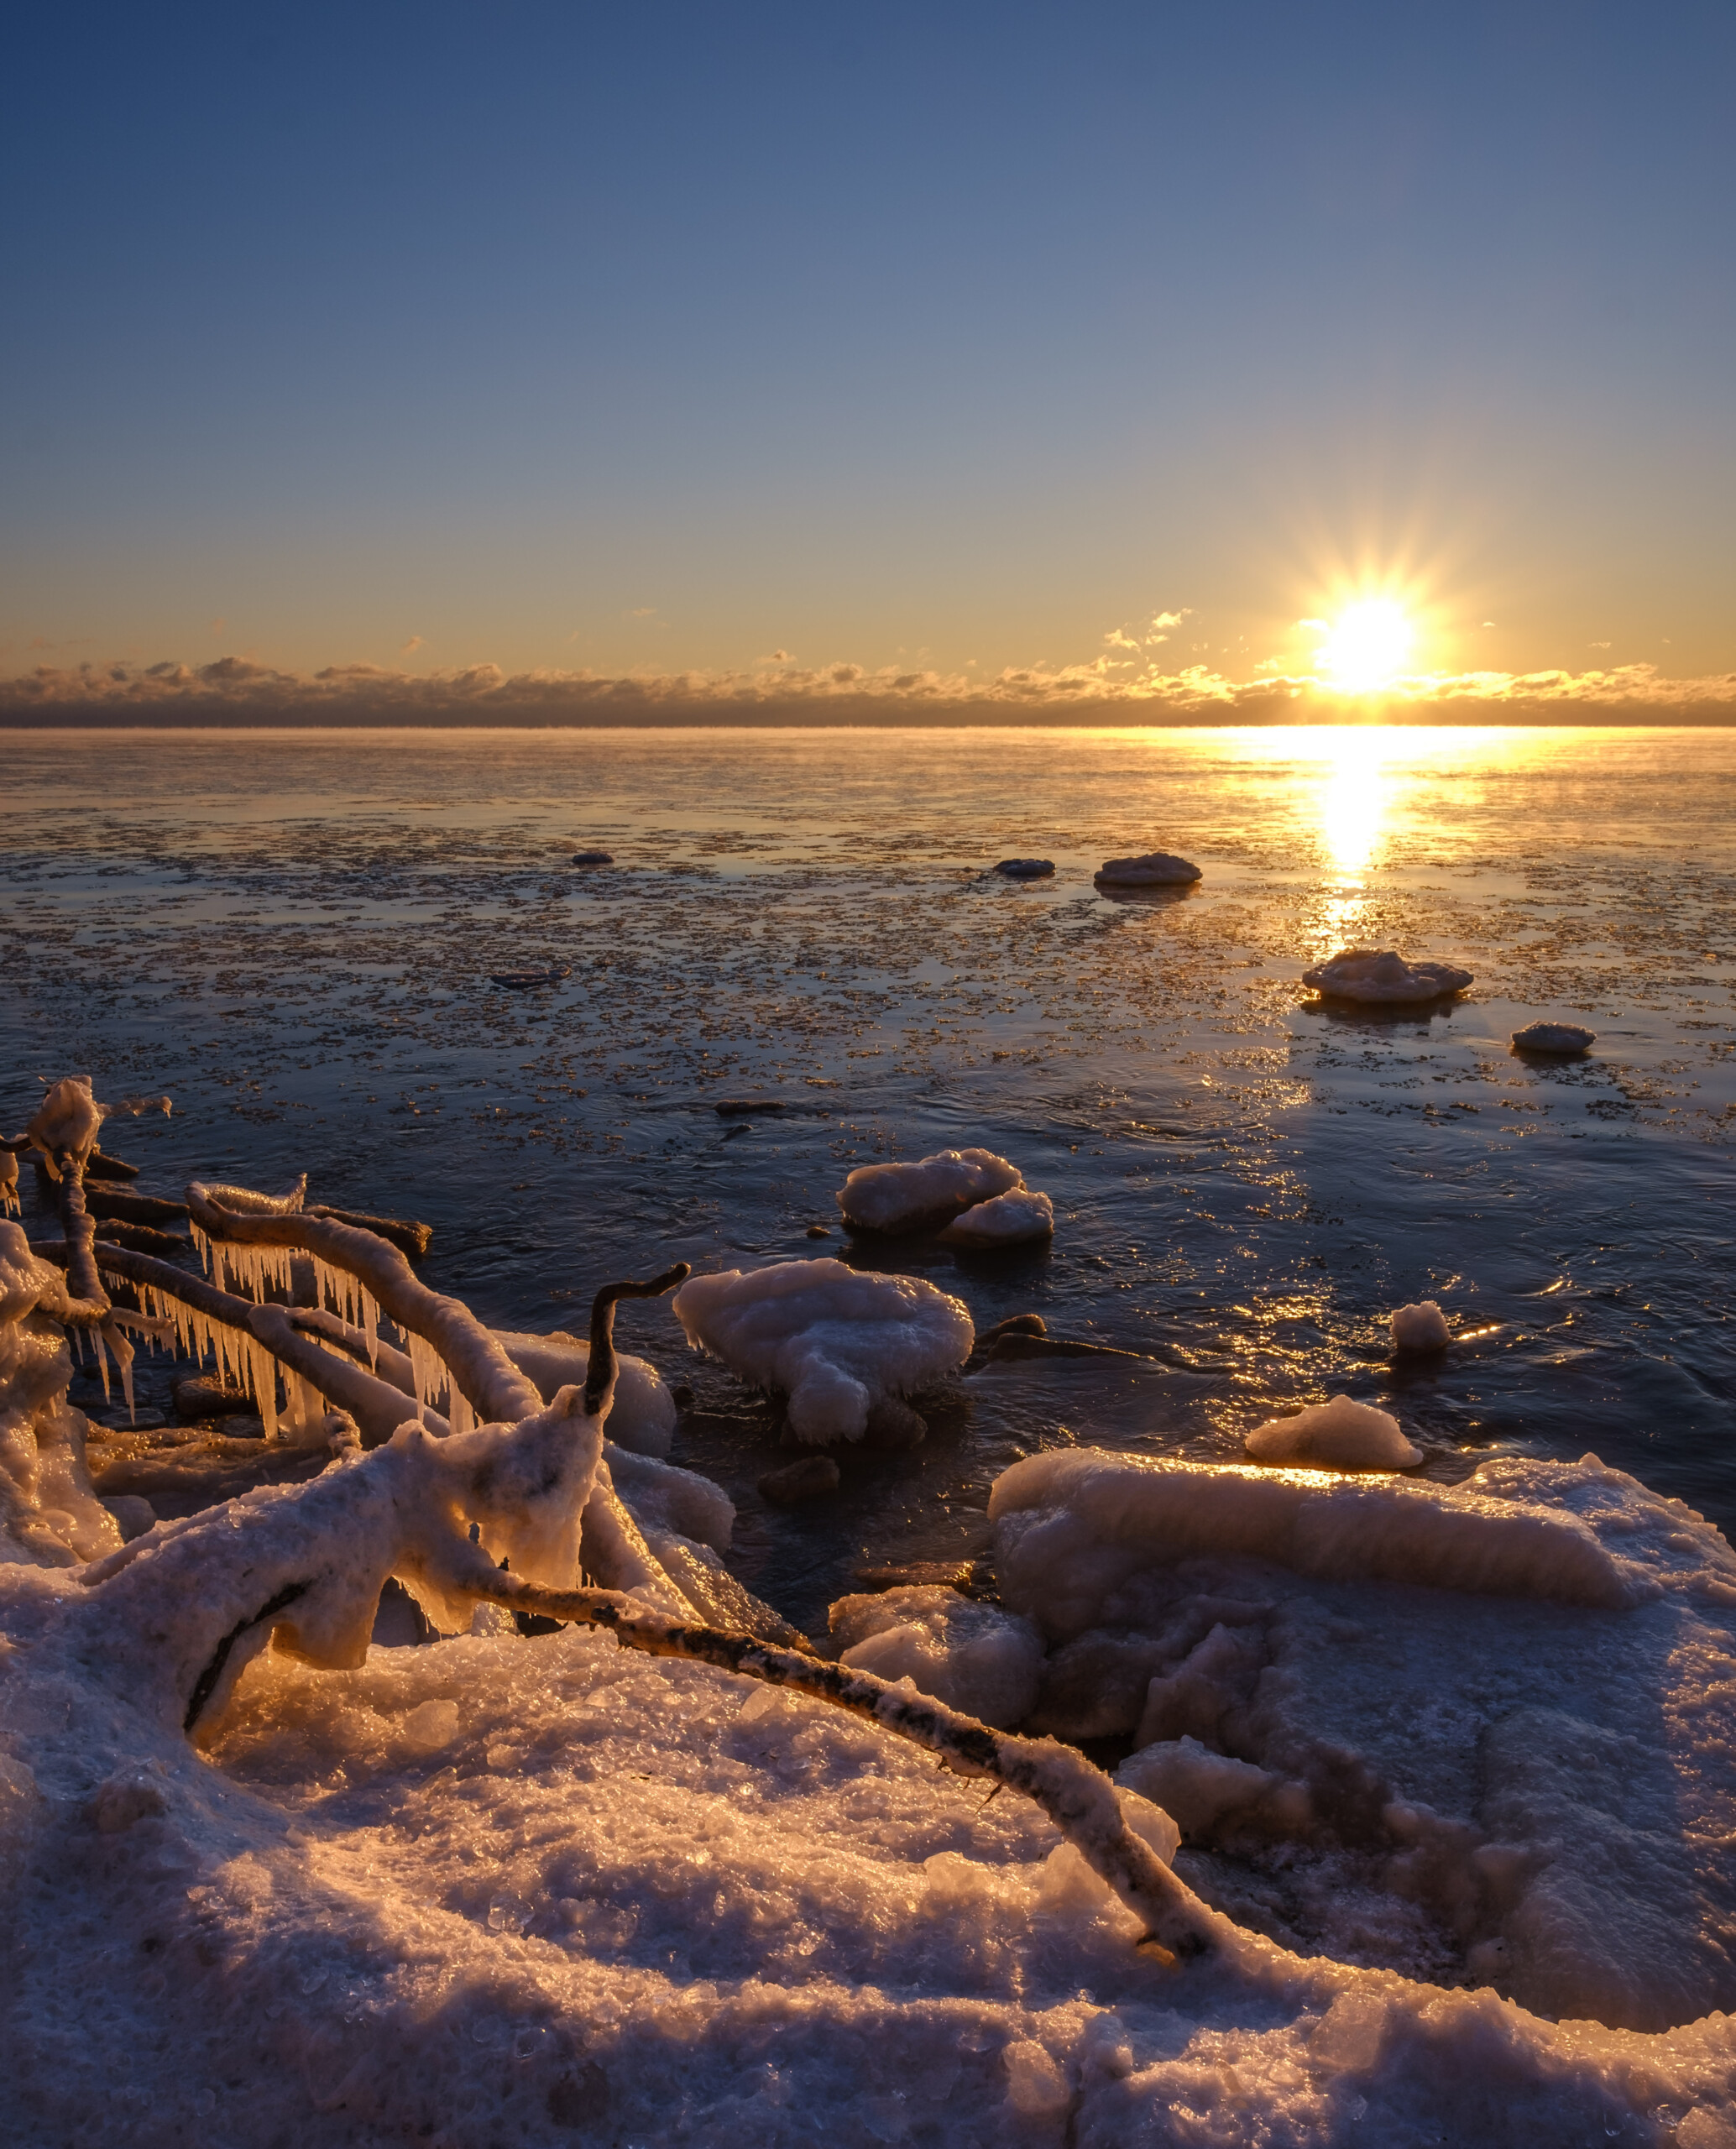 Cold morning at the shore